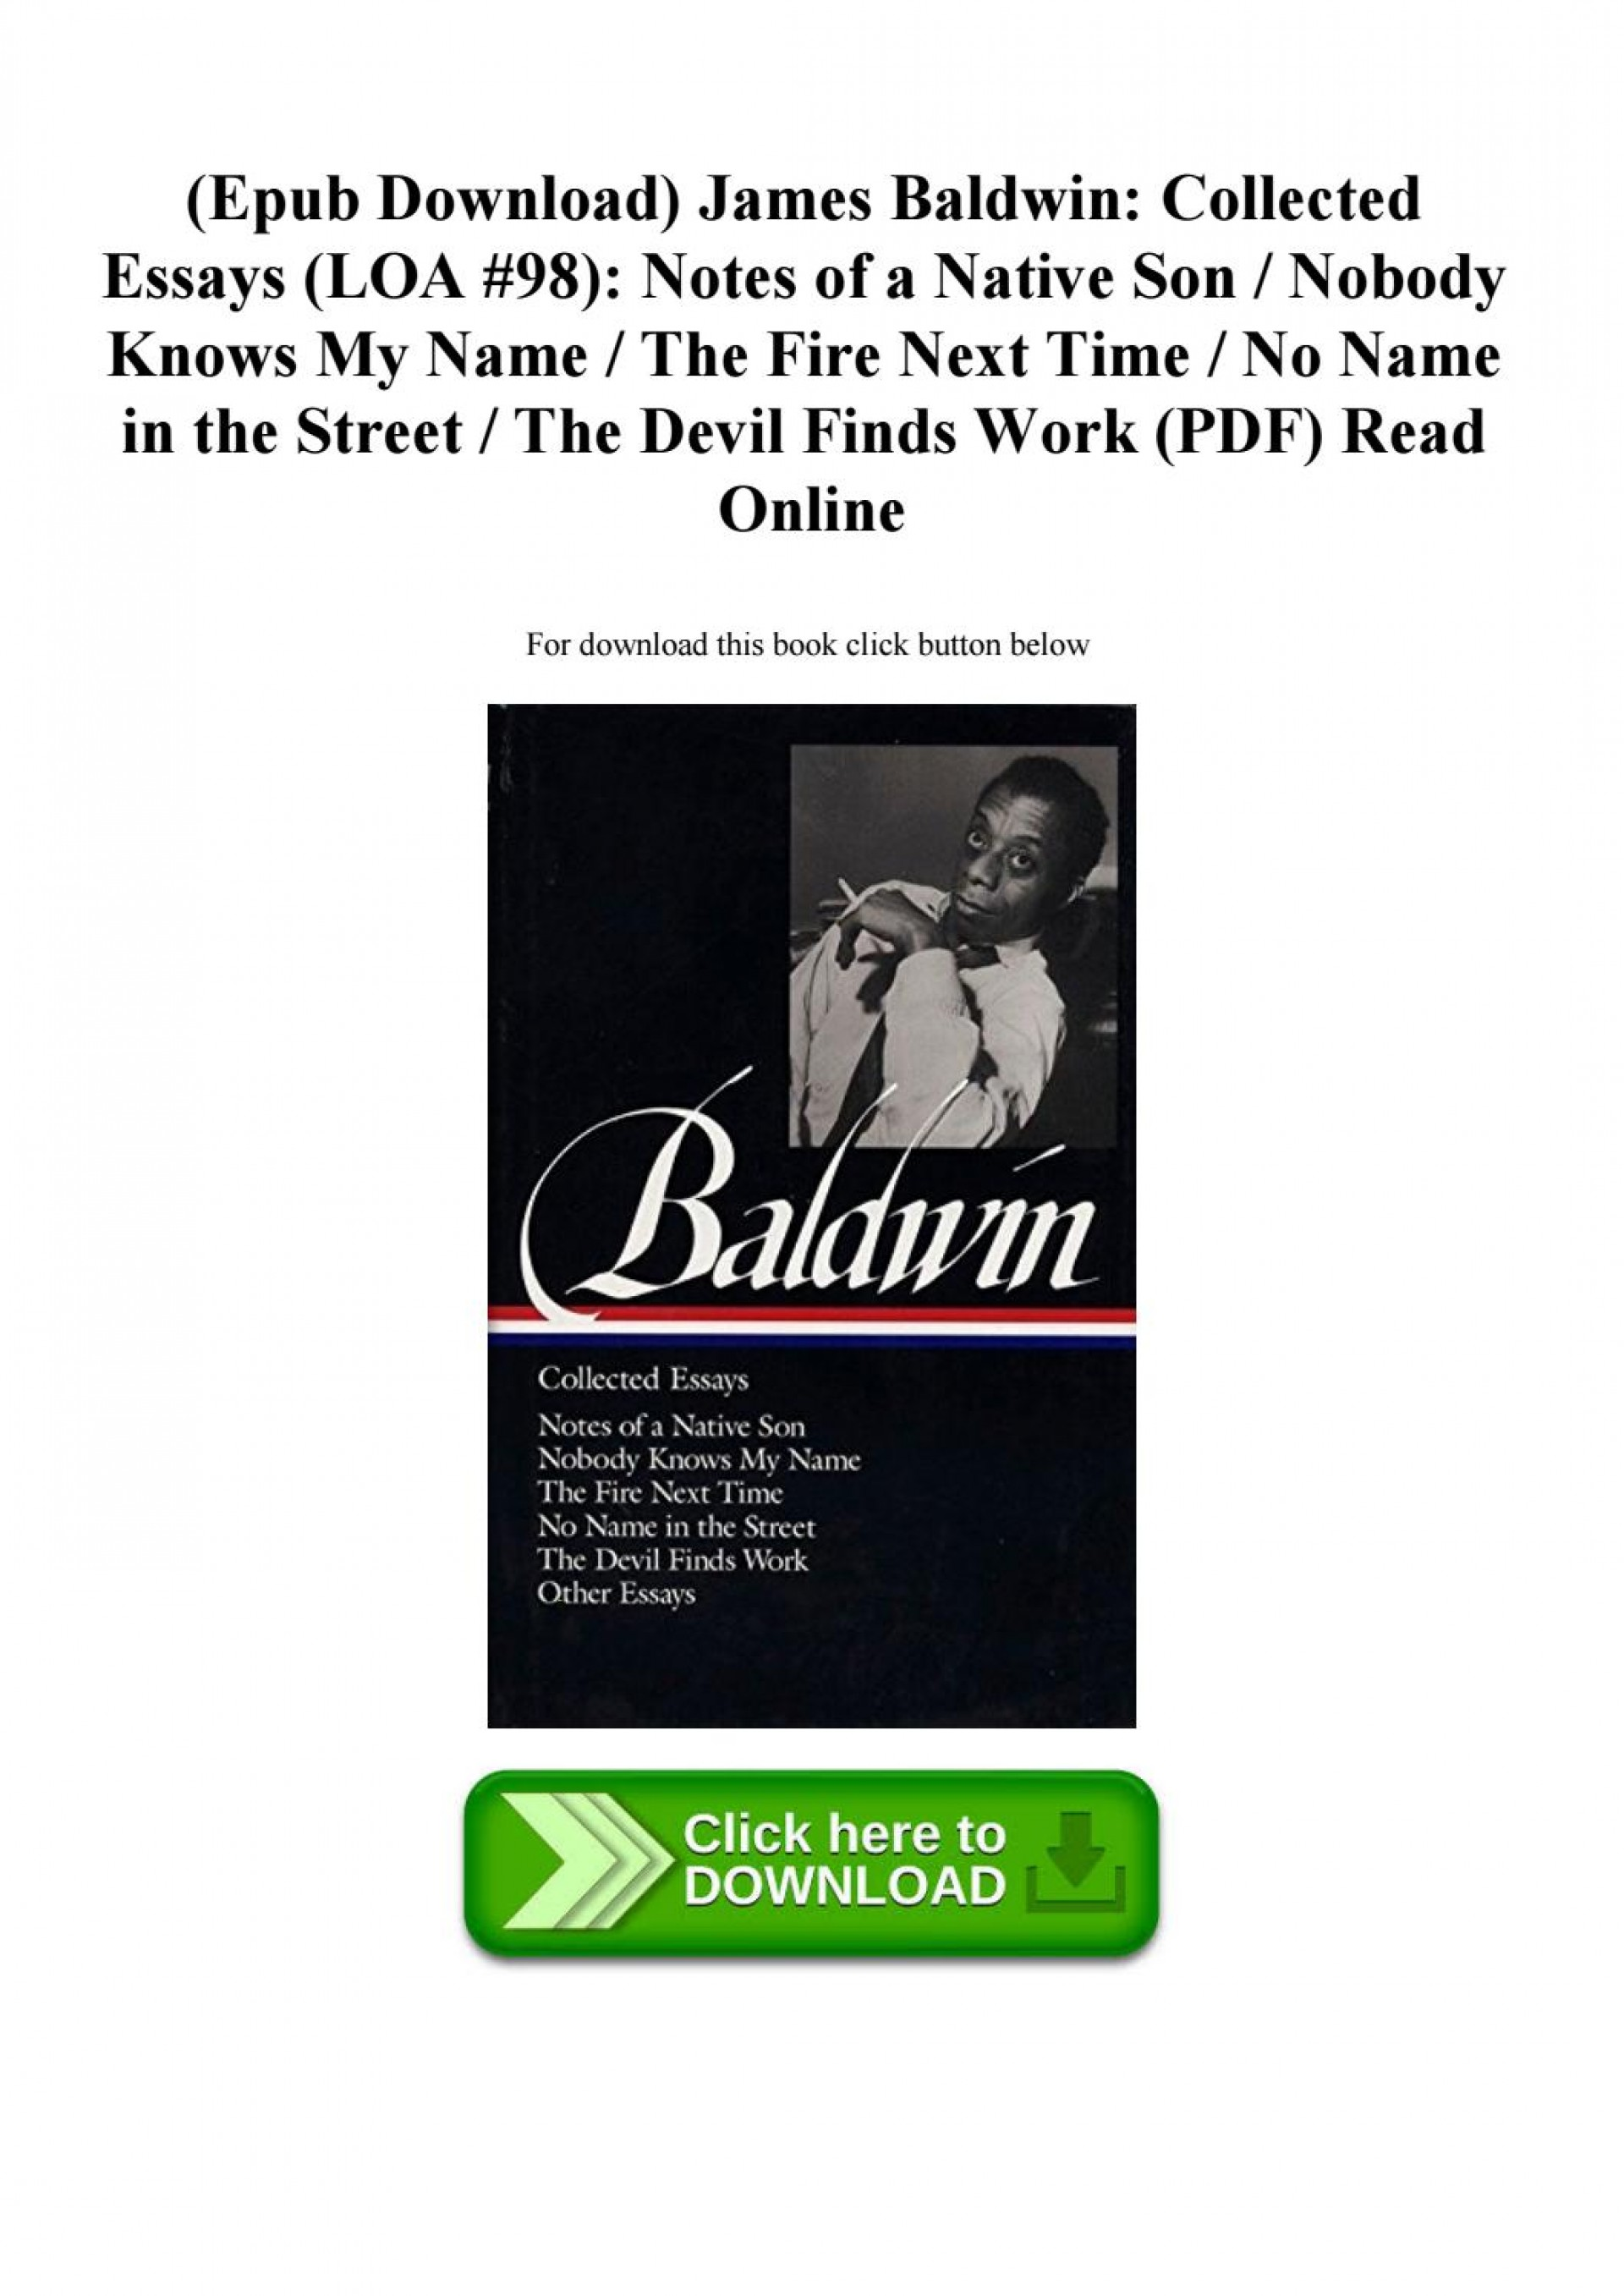 003 James Baldwin Collected Essays Essay Example Page 1 Wondrous Google Books Pdf Table Of Contents 1920